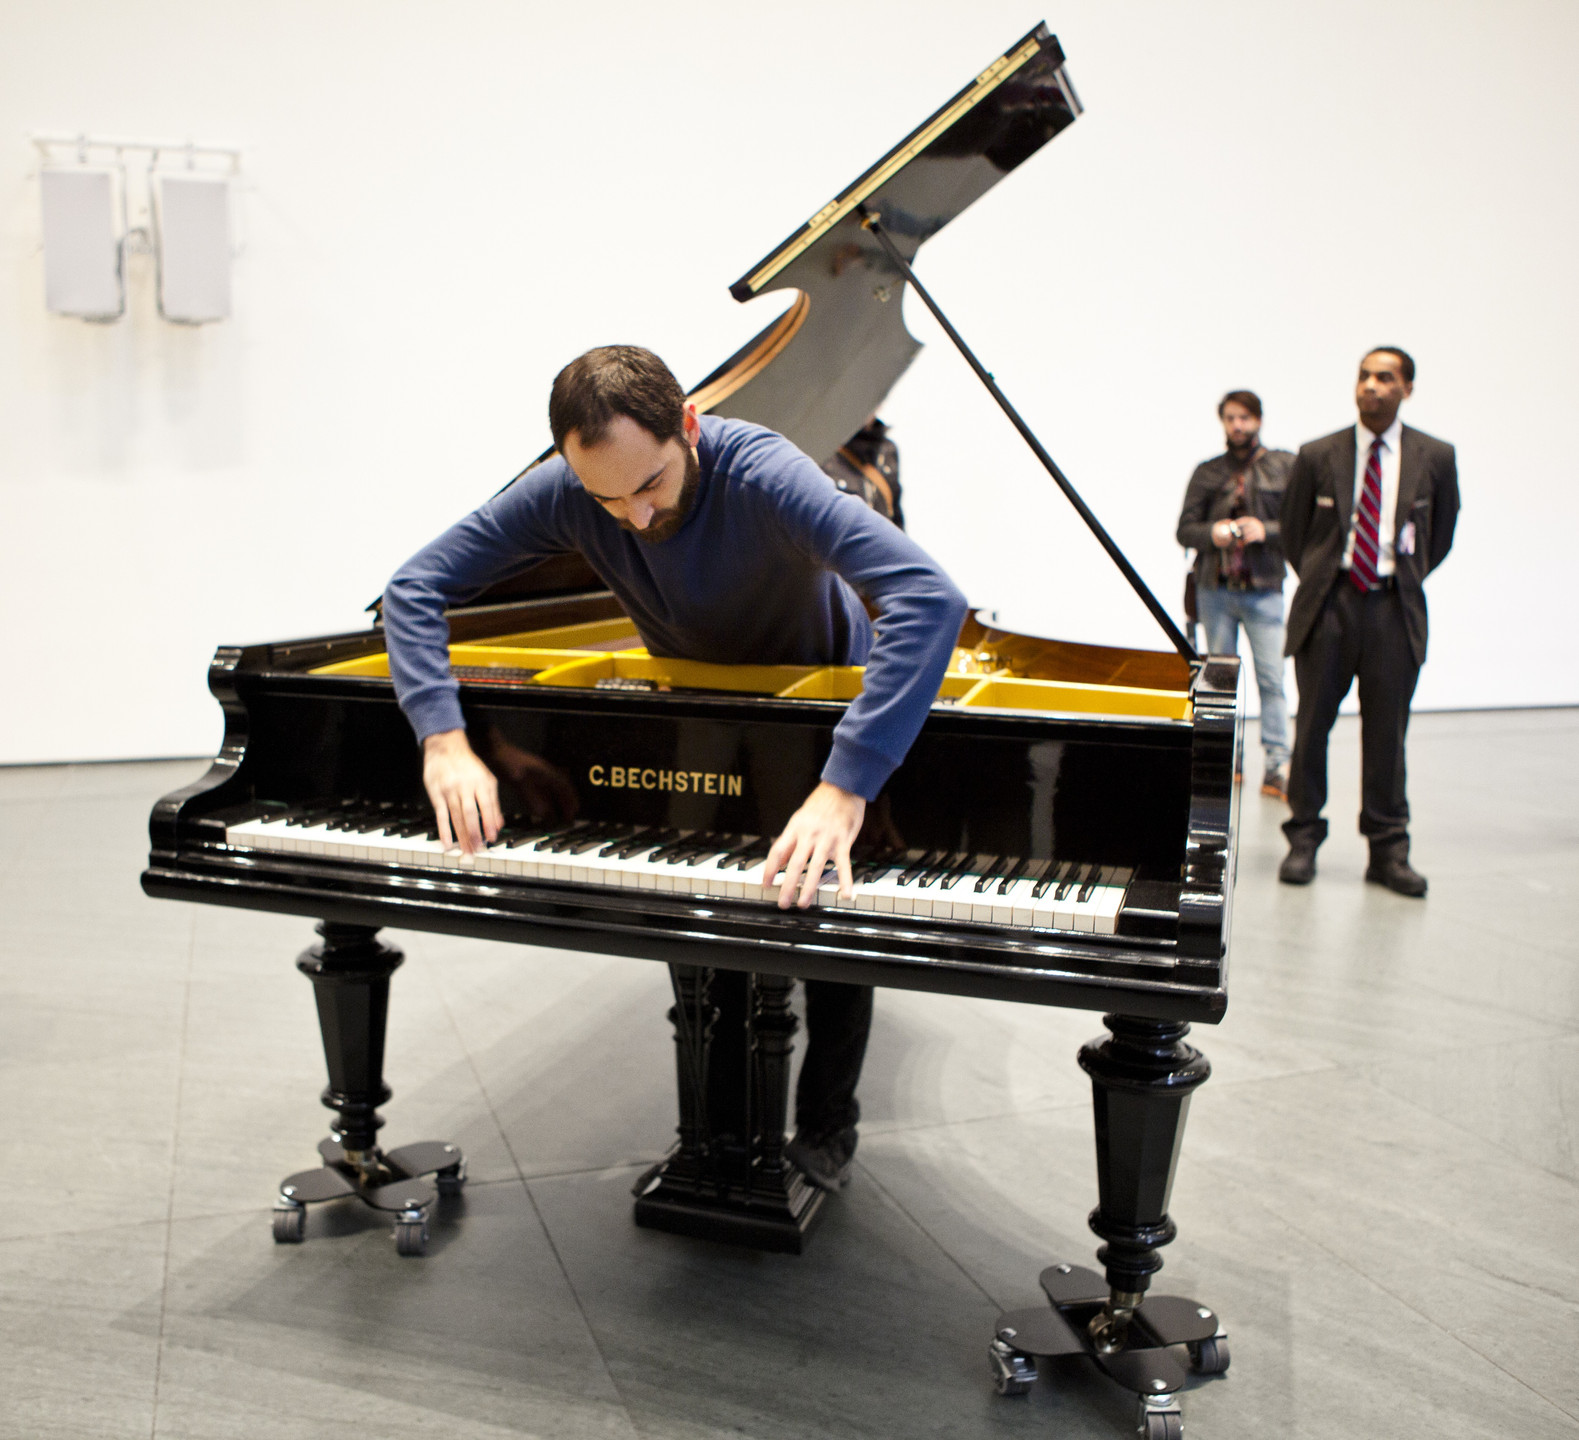 Jennifer Allora, Guillermo Calzadilla. Stop, Repair, Prepare: Variations on Ode to Joy for a Prepared Piano, No.1. 2008